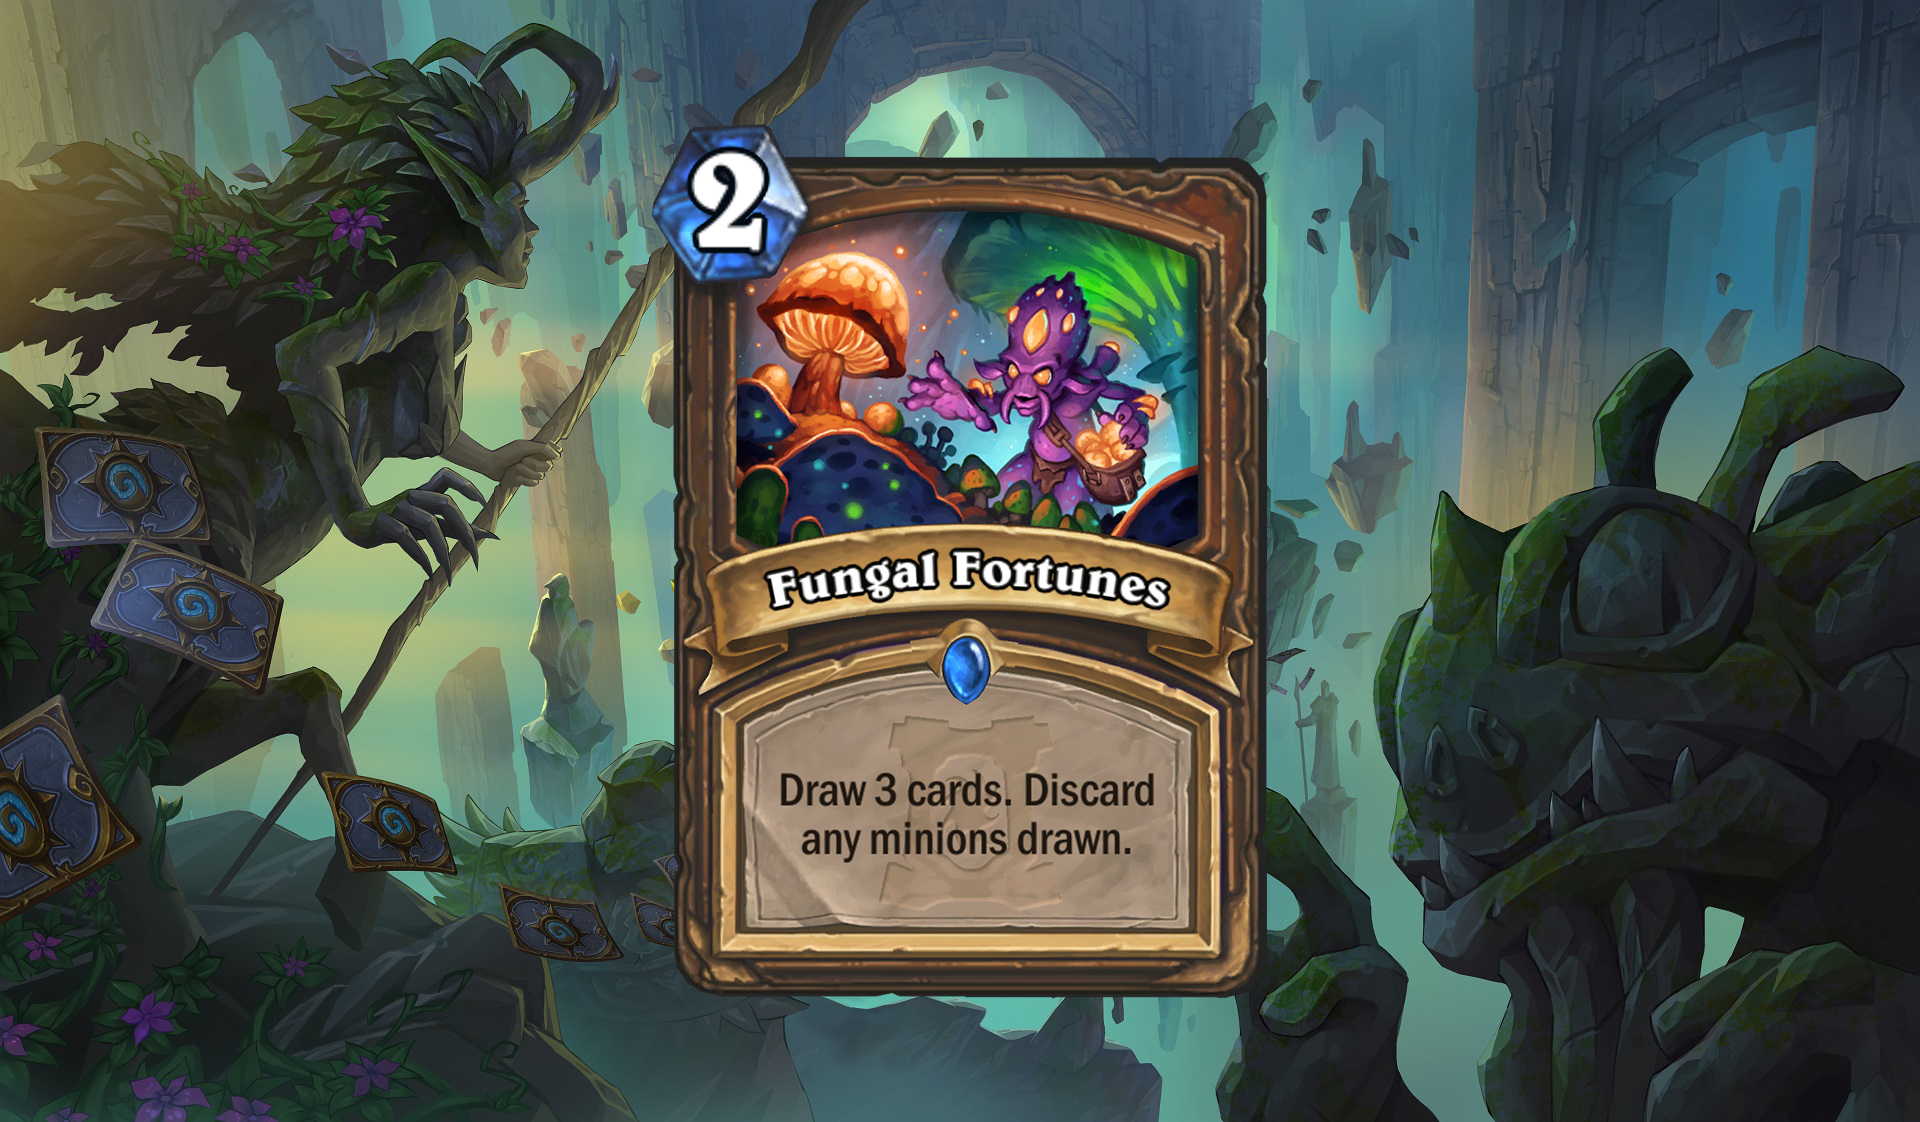 Hearthstone - Fungal Fortunes